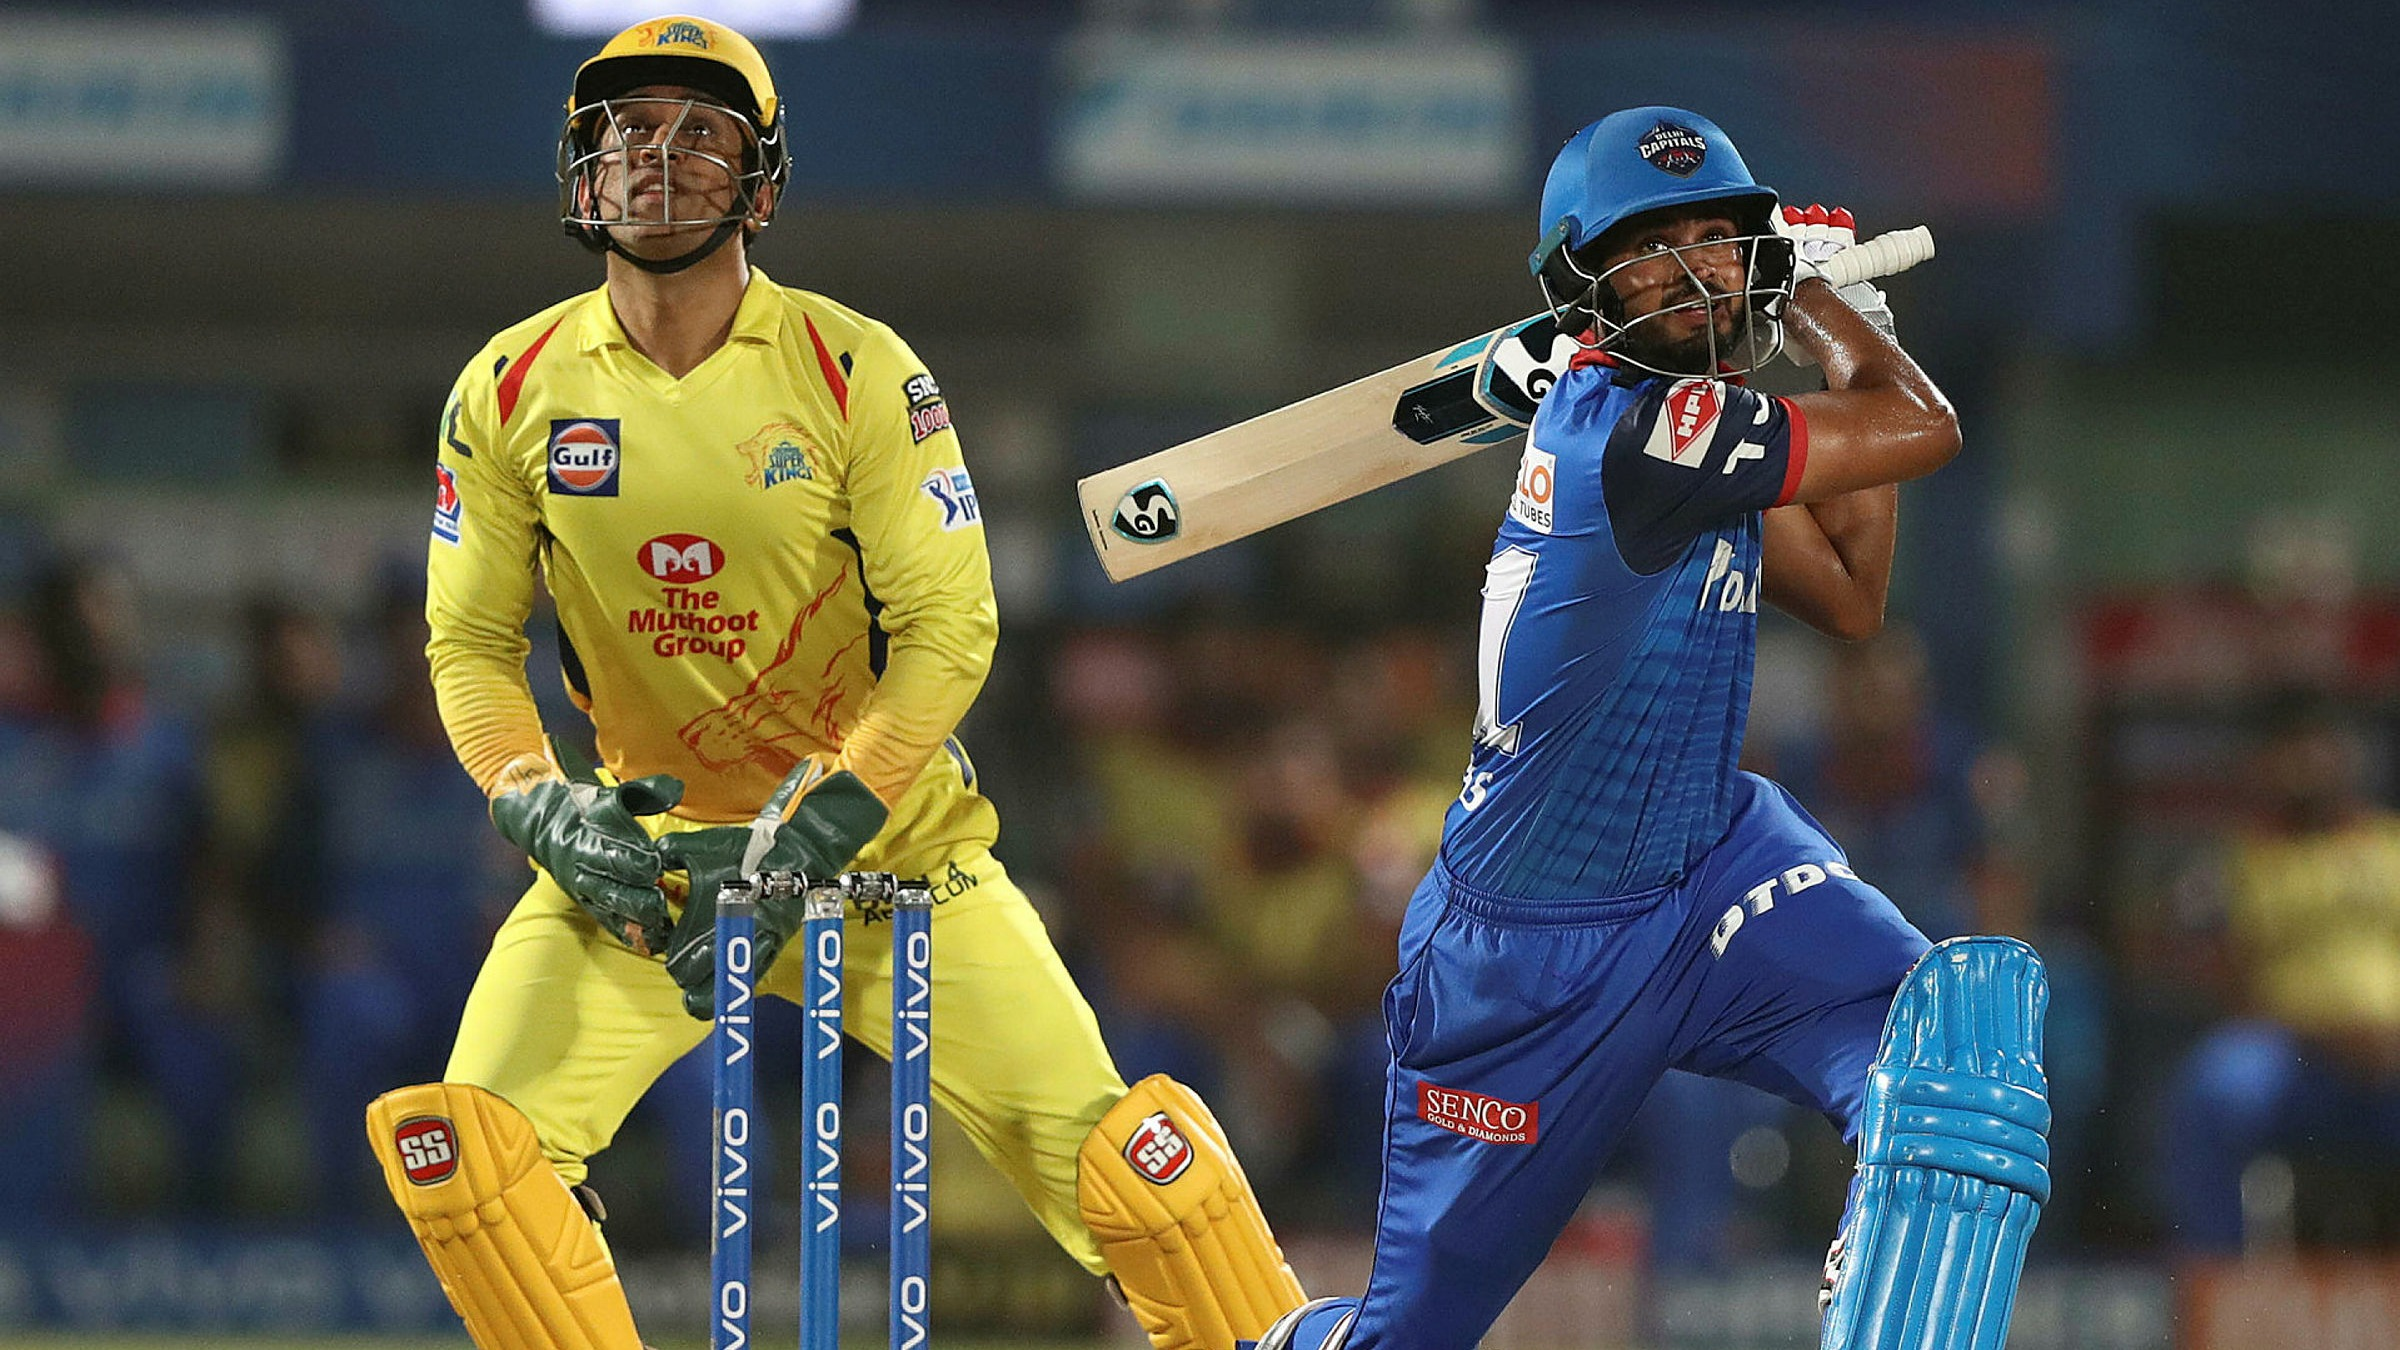 New Us Cricket League Aims To Crack World S Largest Sports Market Financial Times